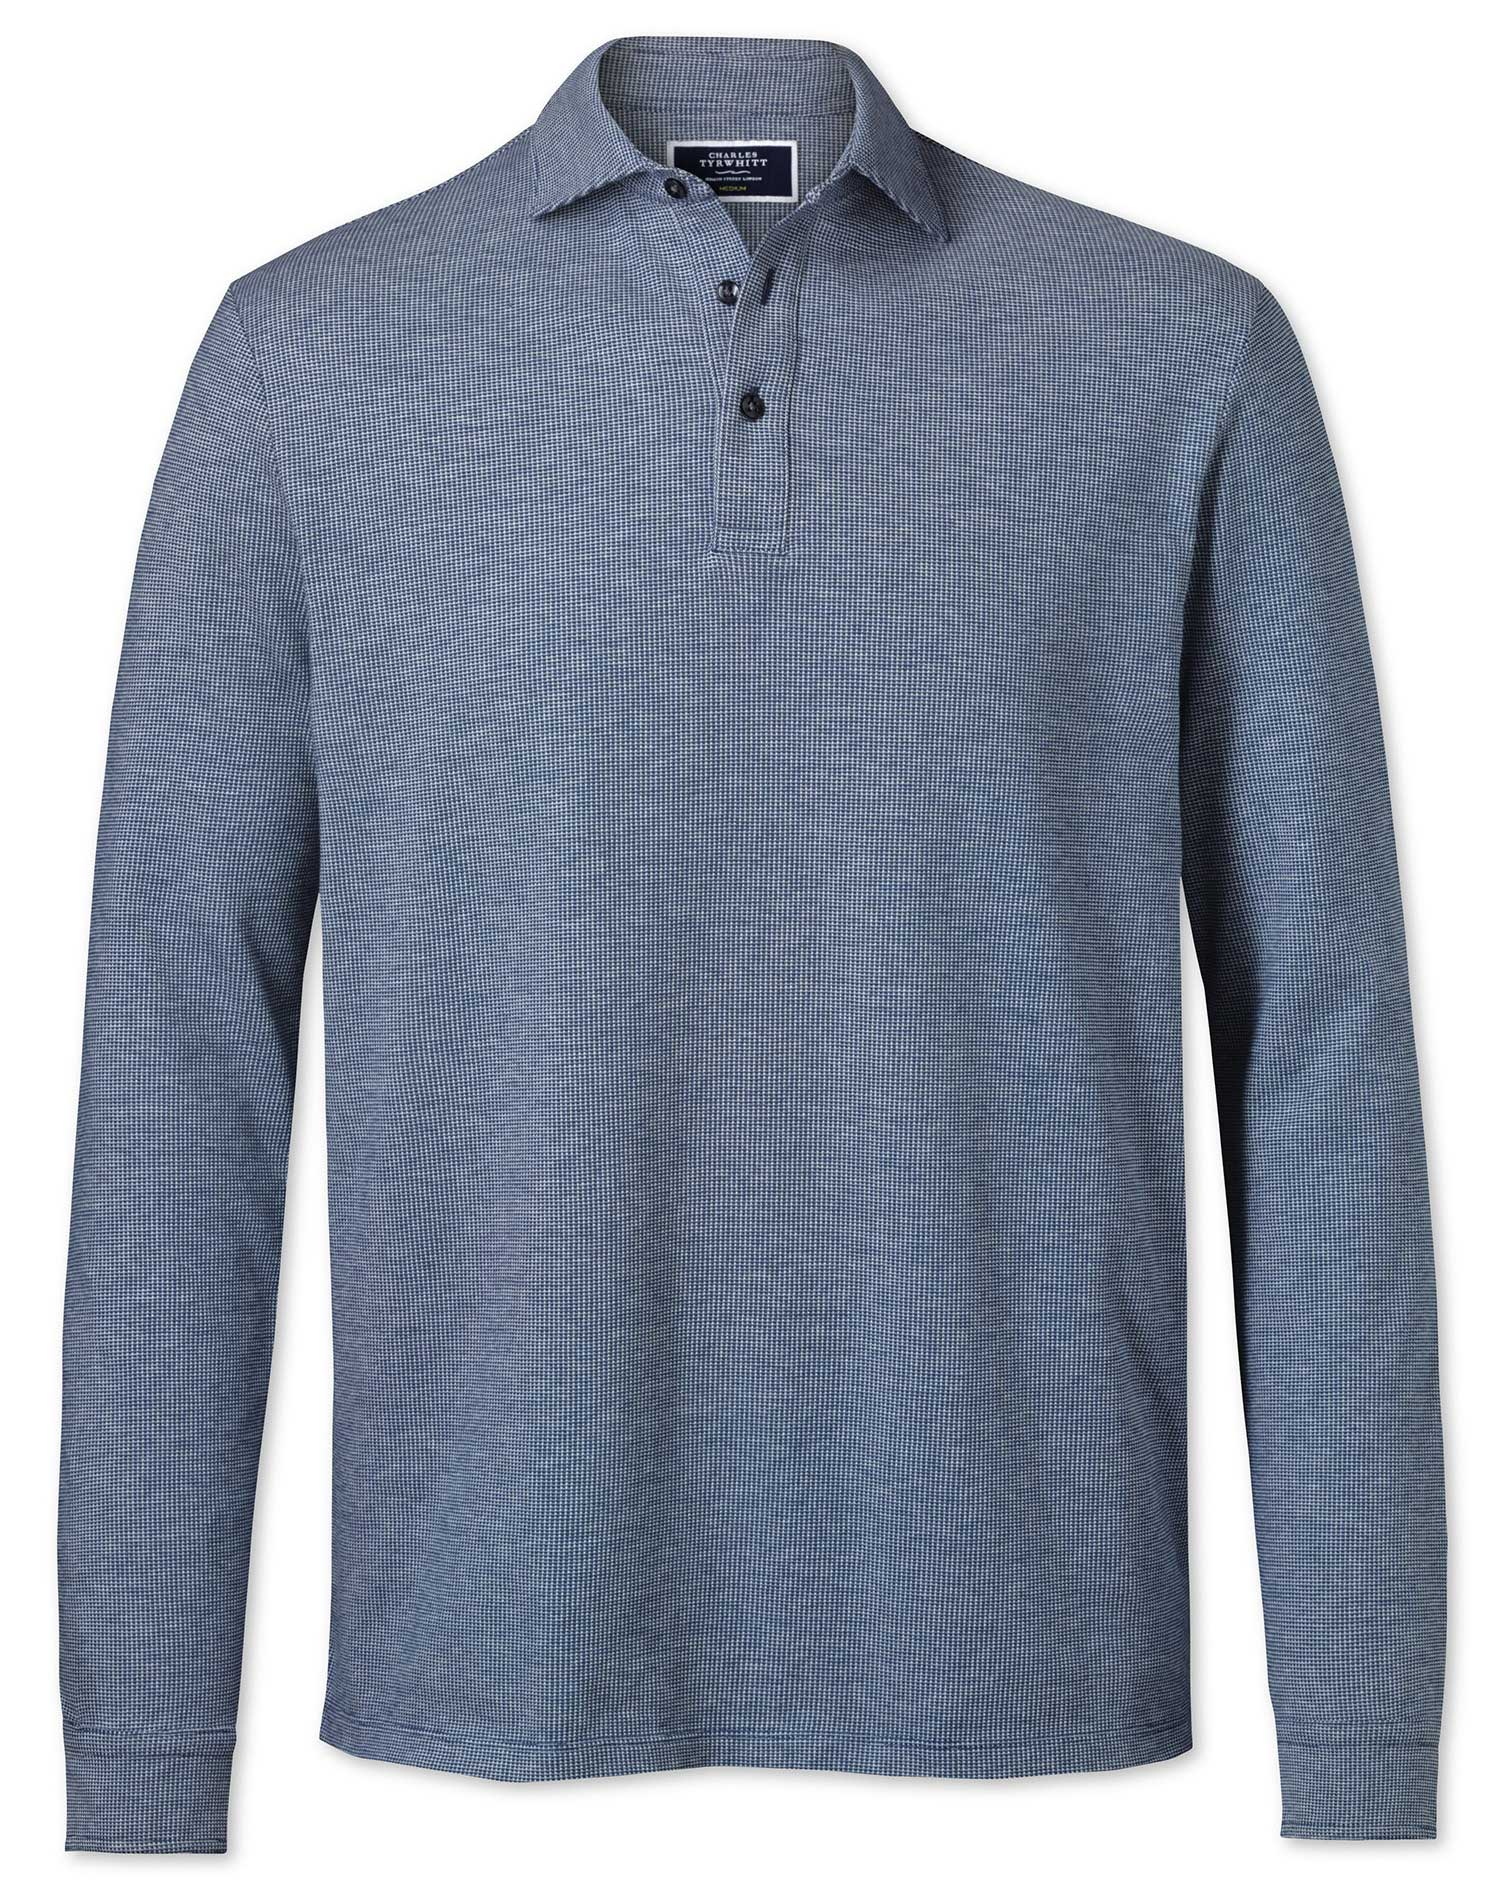 Blue and White Long Sleeve Textured Cotton Polo Size XS by Charles Tyrwhitt